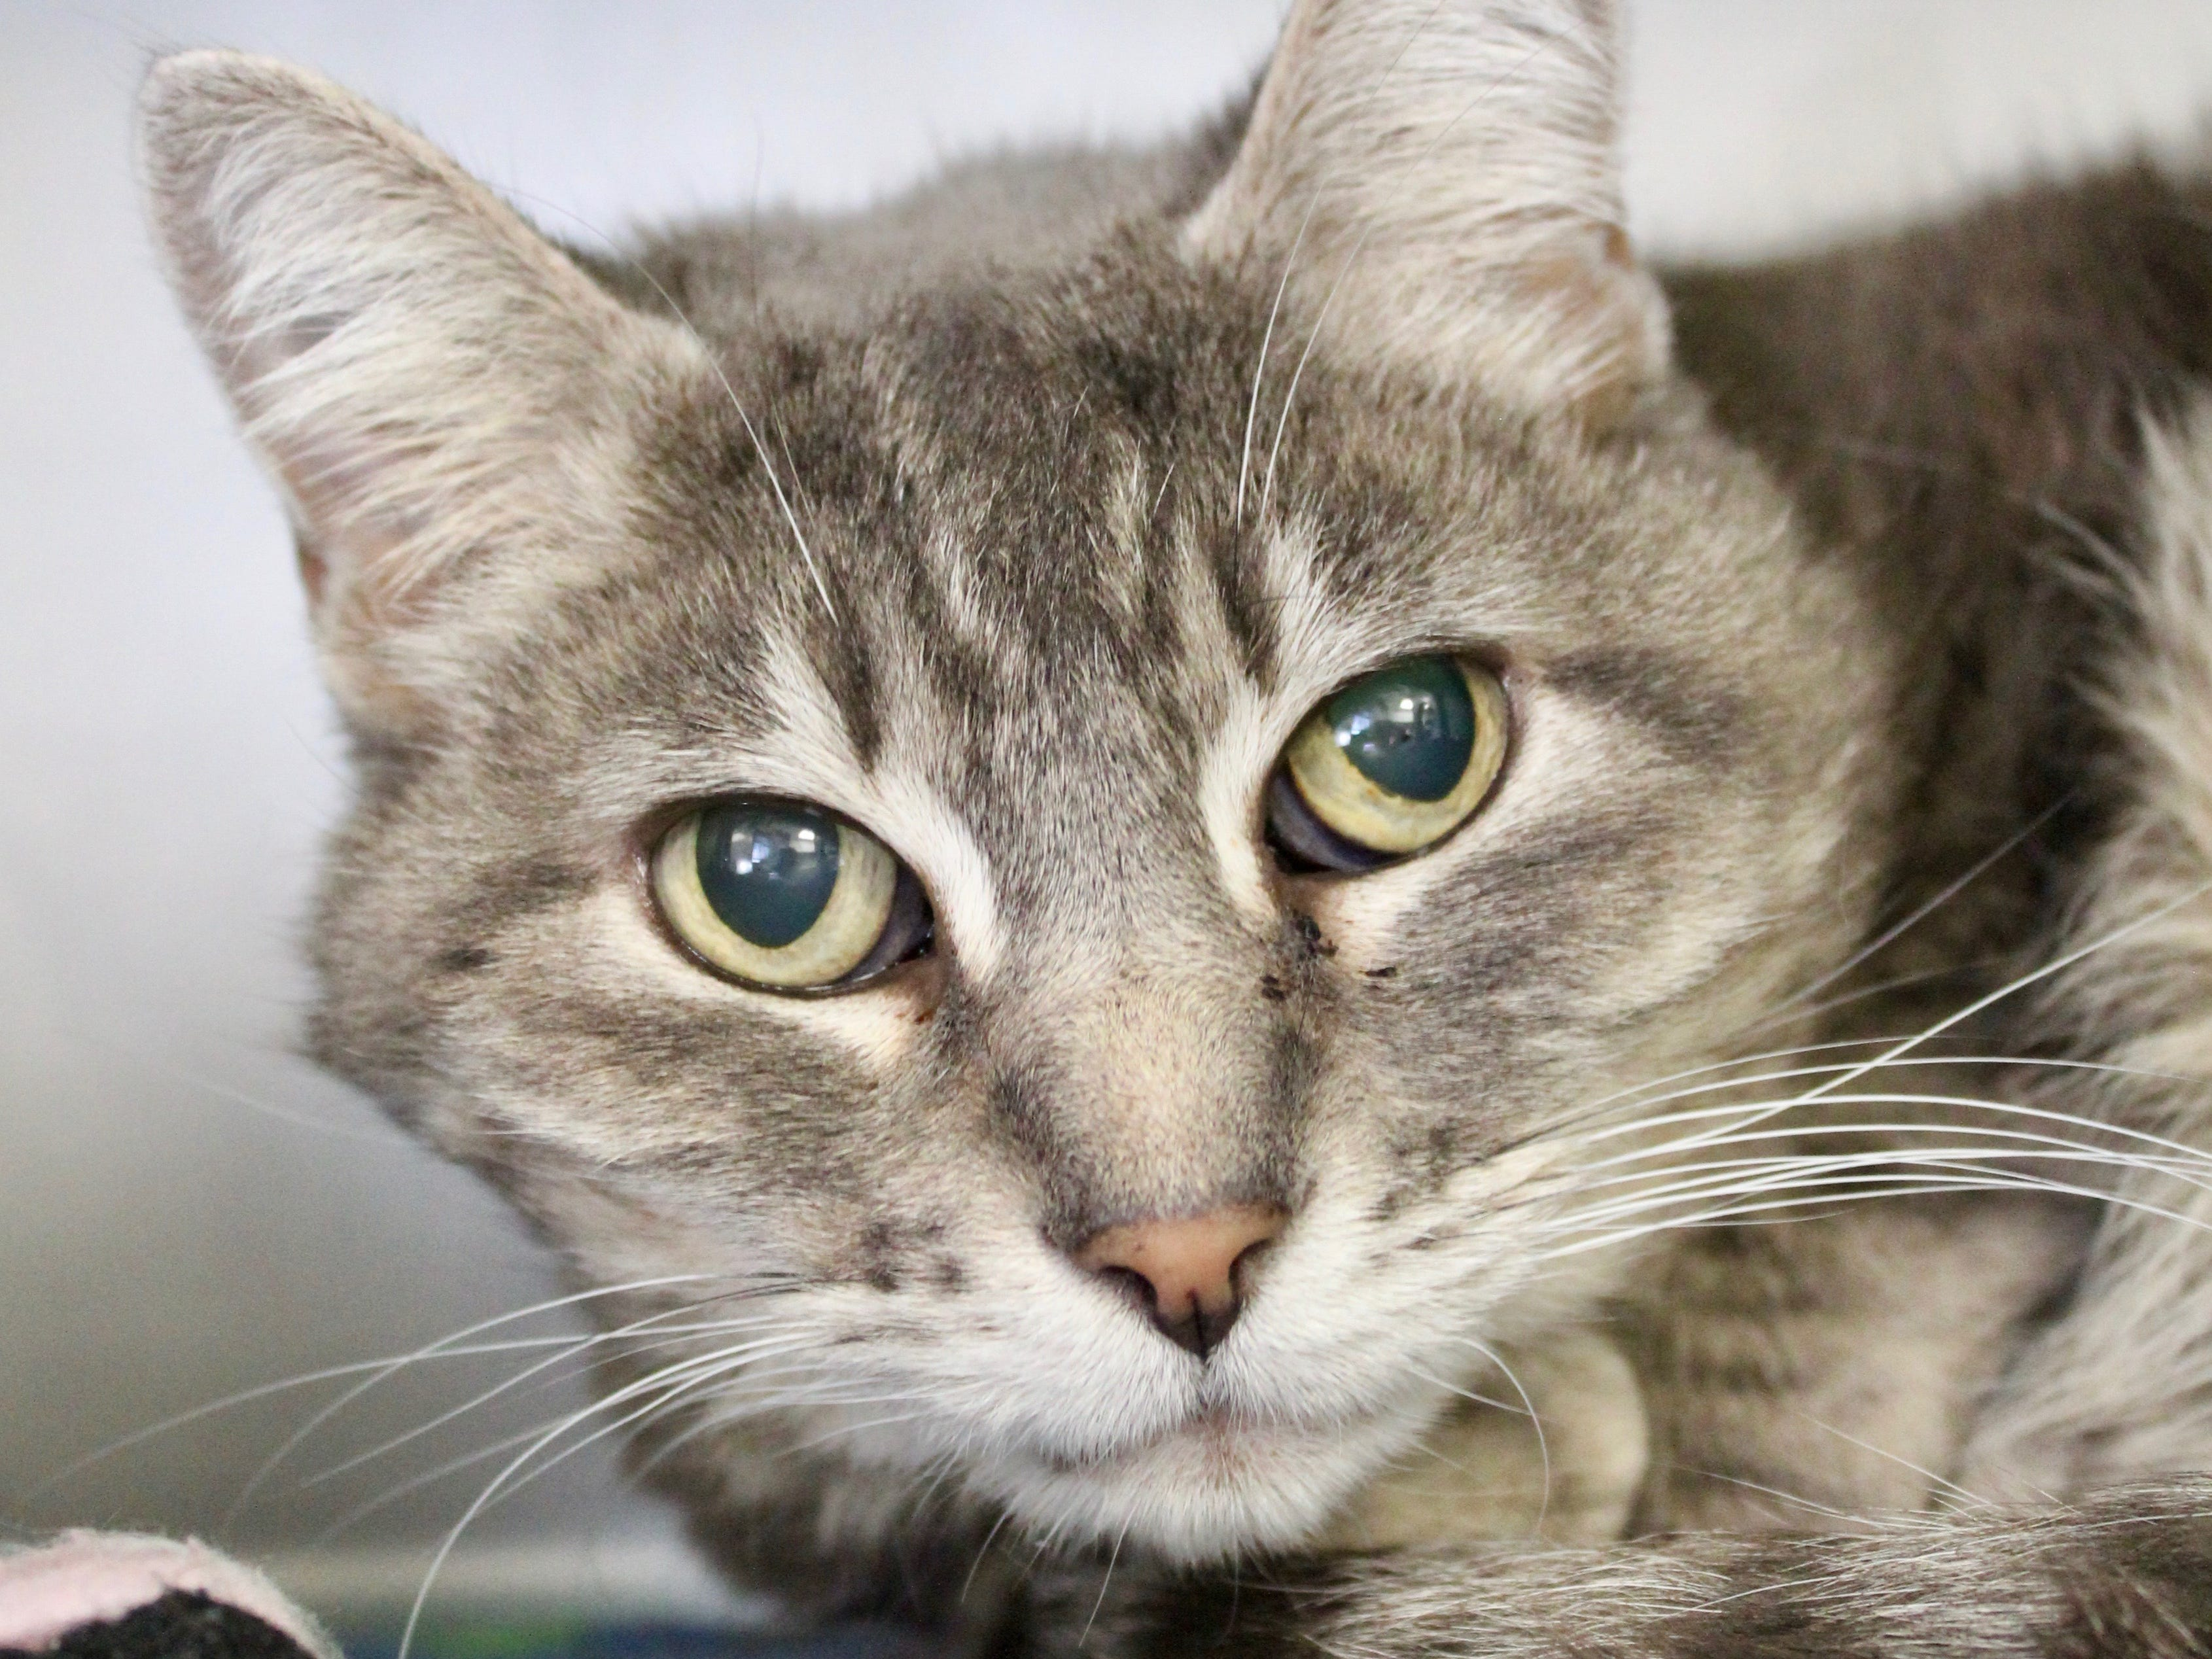 Spud is a 16-year-old short-haired tabby. She can be a little shy, but she is incredibly loyal and loving to those she knows well. Spud gets along nicely with cats, but it is unknown how she feels about dogs or children. For more information, go to https://whs4pets.org/adopt-a-pet/pet-details/?id=39181431 or call Willamette Humane Society at 503-585-5900.